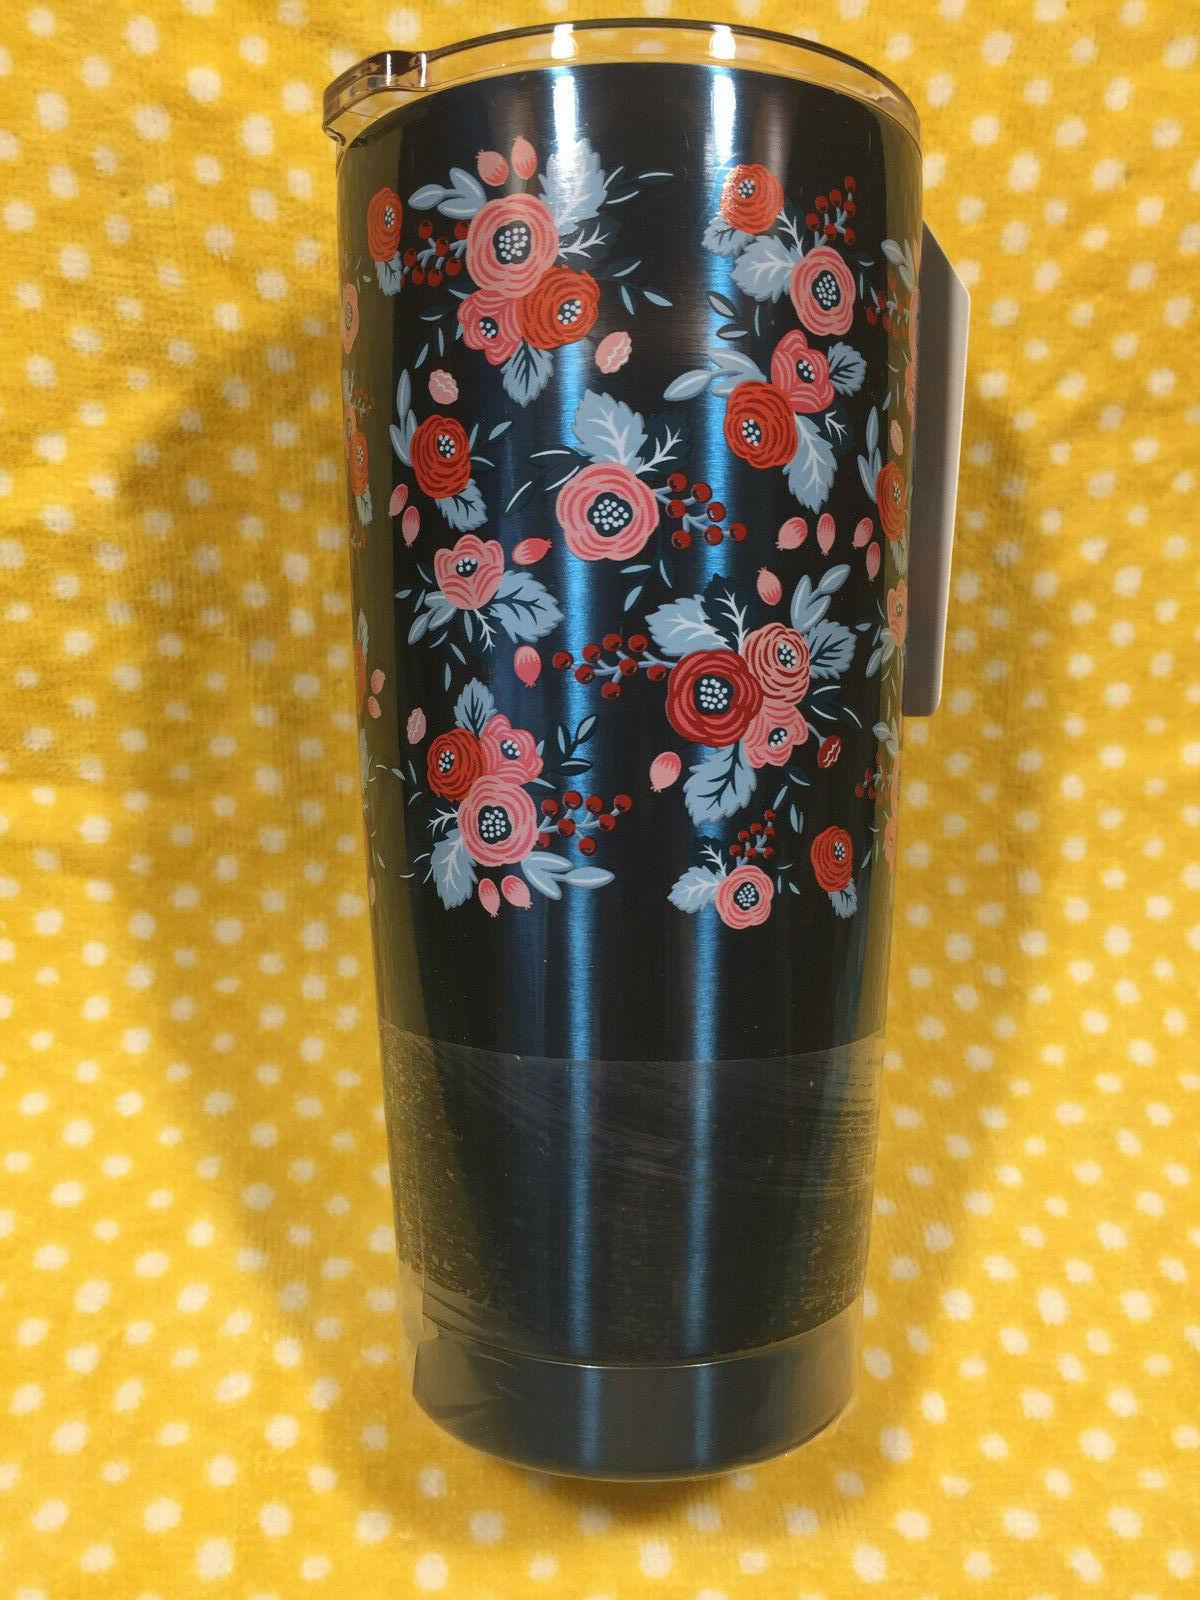 The Pioneer Woman Stainless Steel Tumbler 20 oz Many Colors